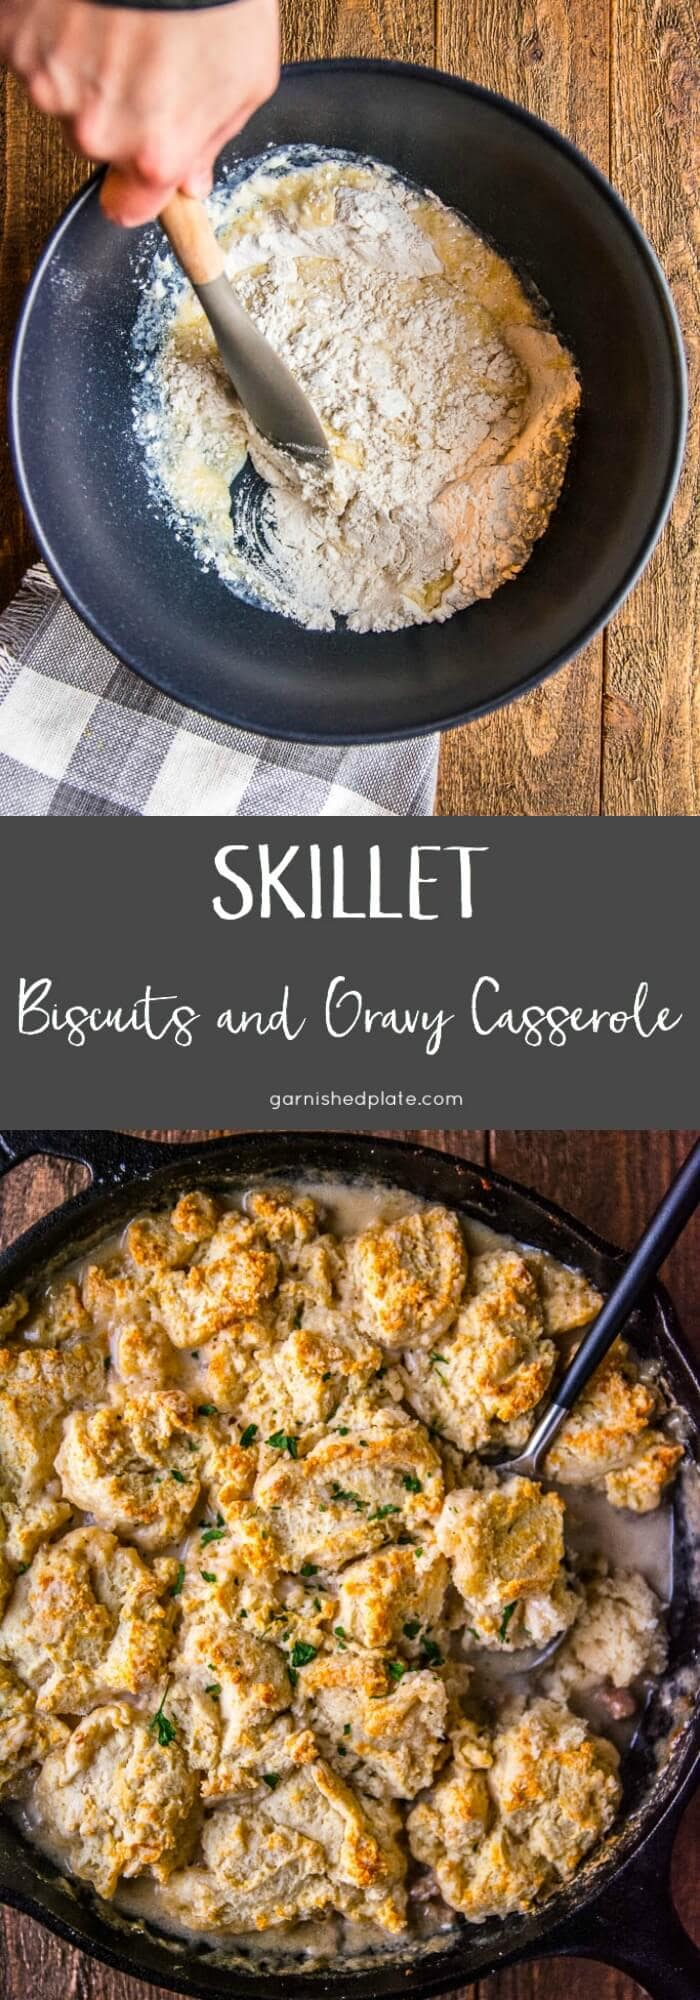 Skillet Biscuits and Gravy Casserole